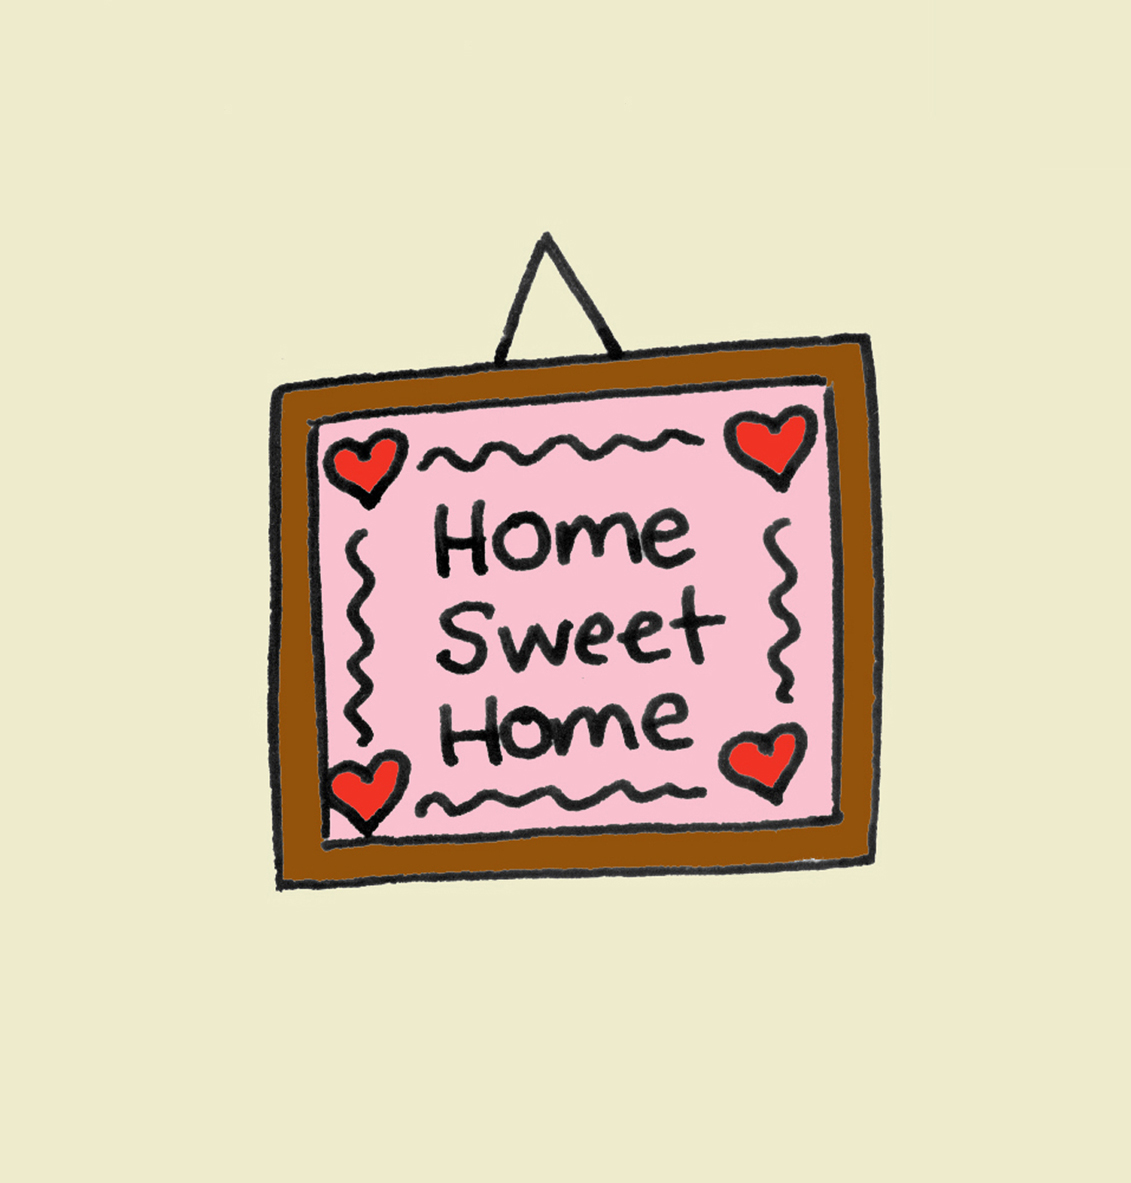 Home Sweet Home   Home is where the heart is...